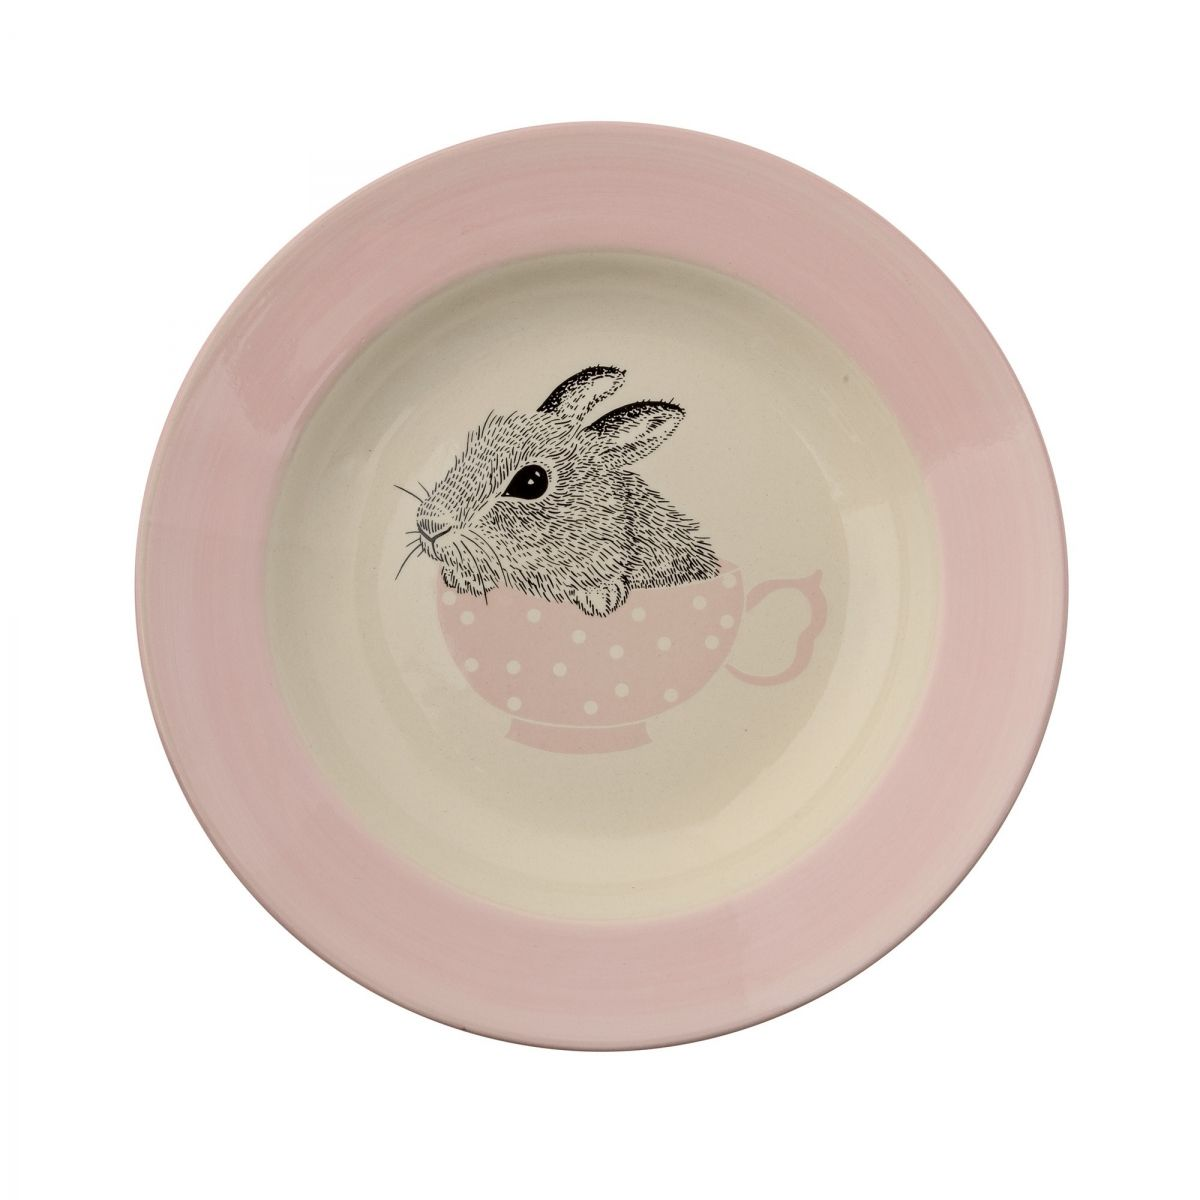 Soup Plate Nanna off white/nude - Bloomingville